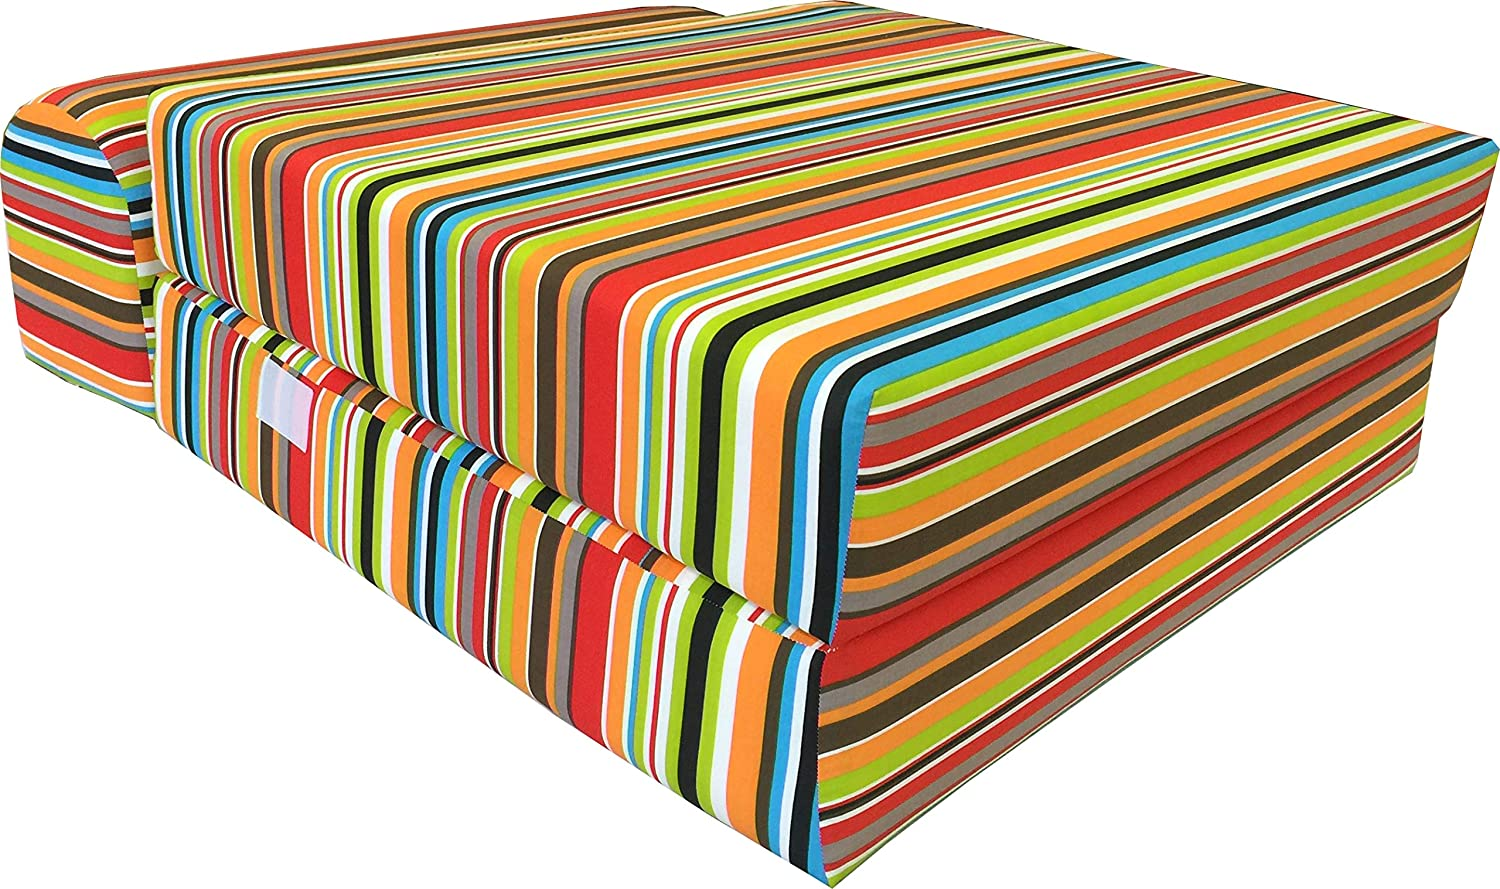 Amazon.com: Multi colores rayas individual Tamaño Sleeper ...